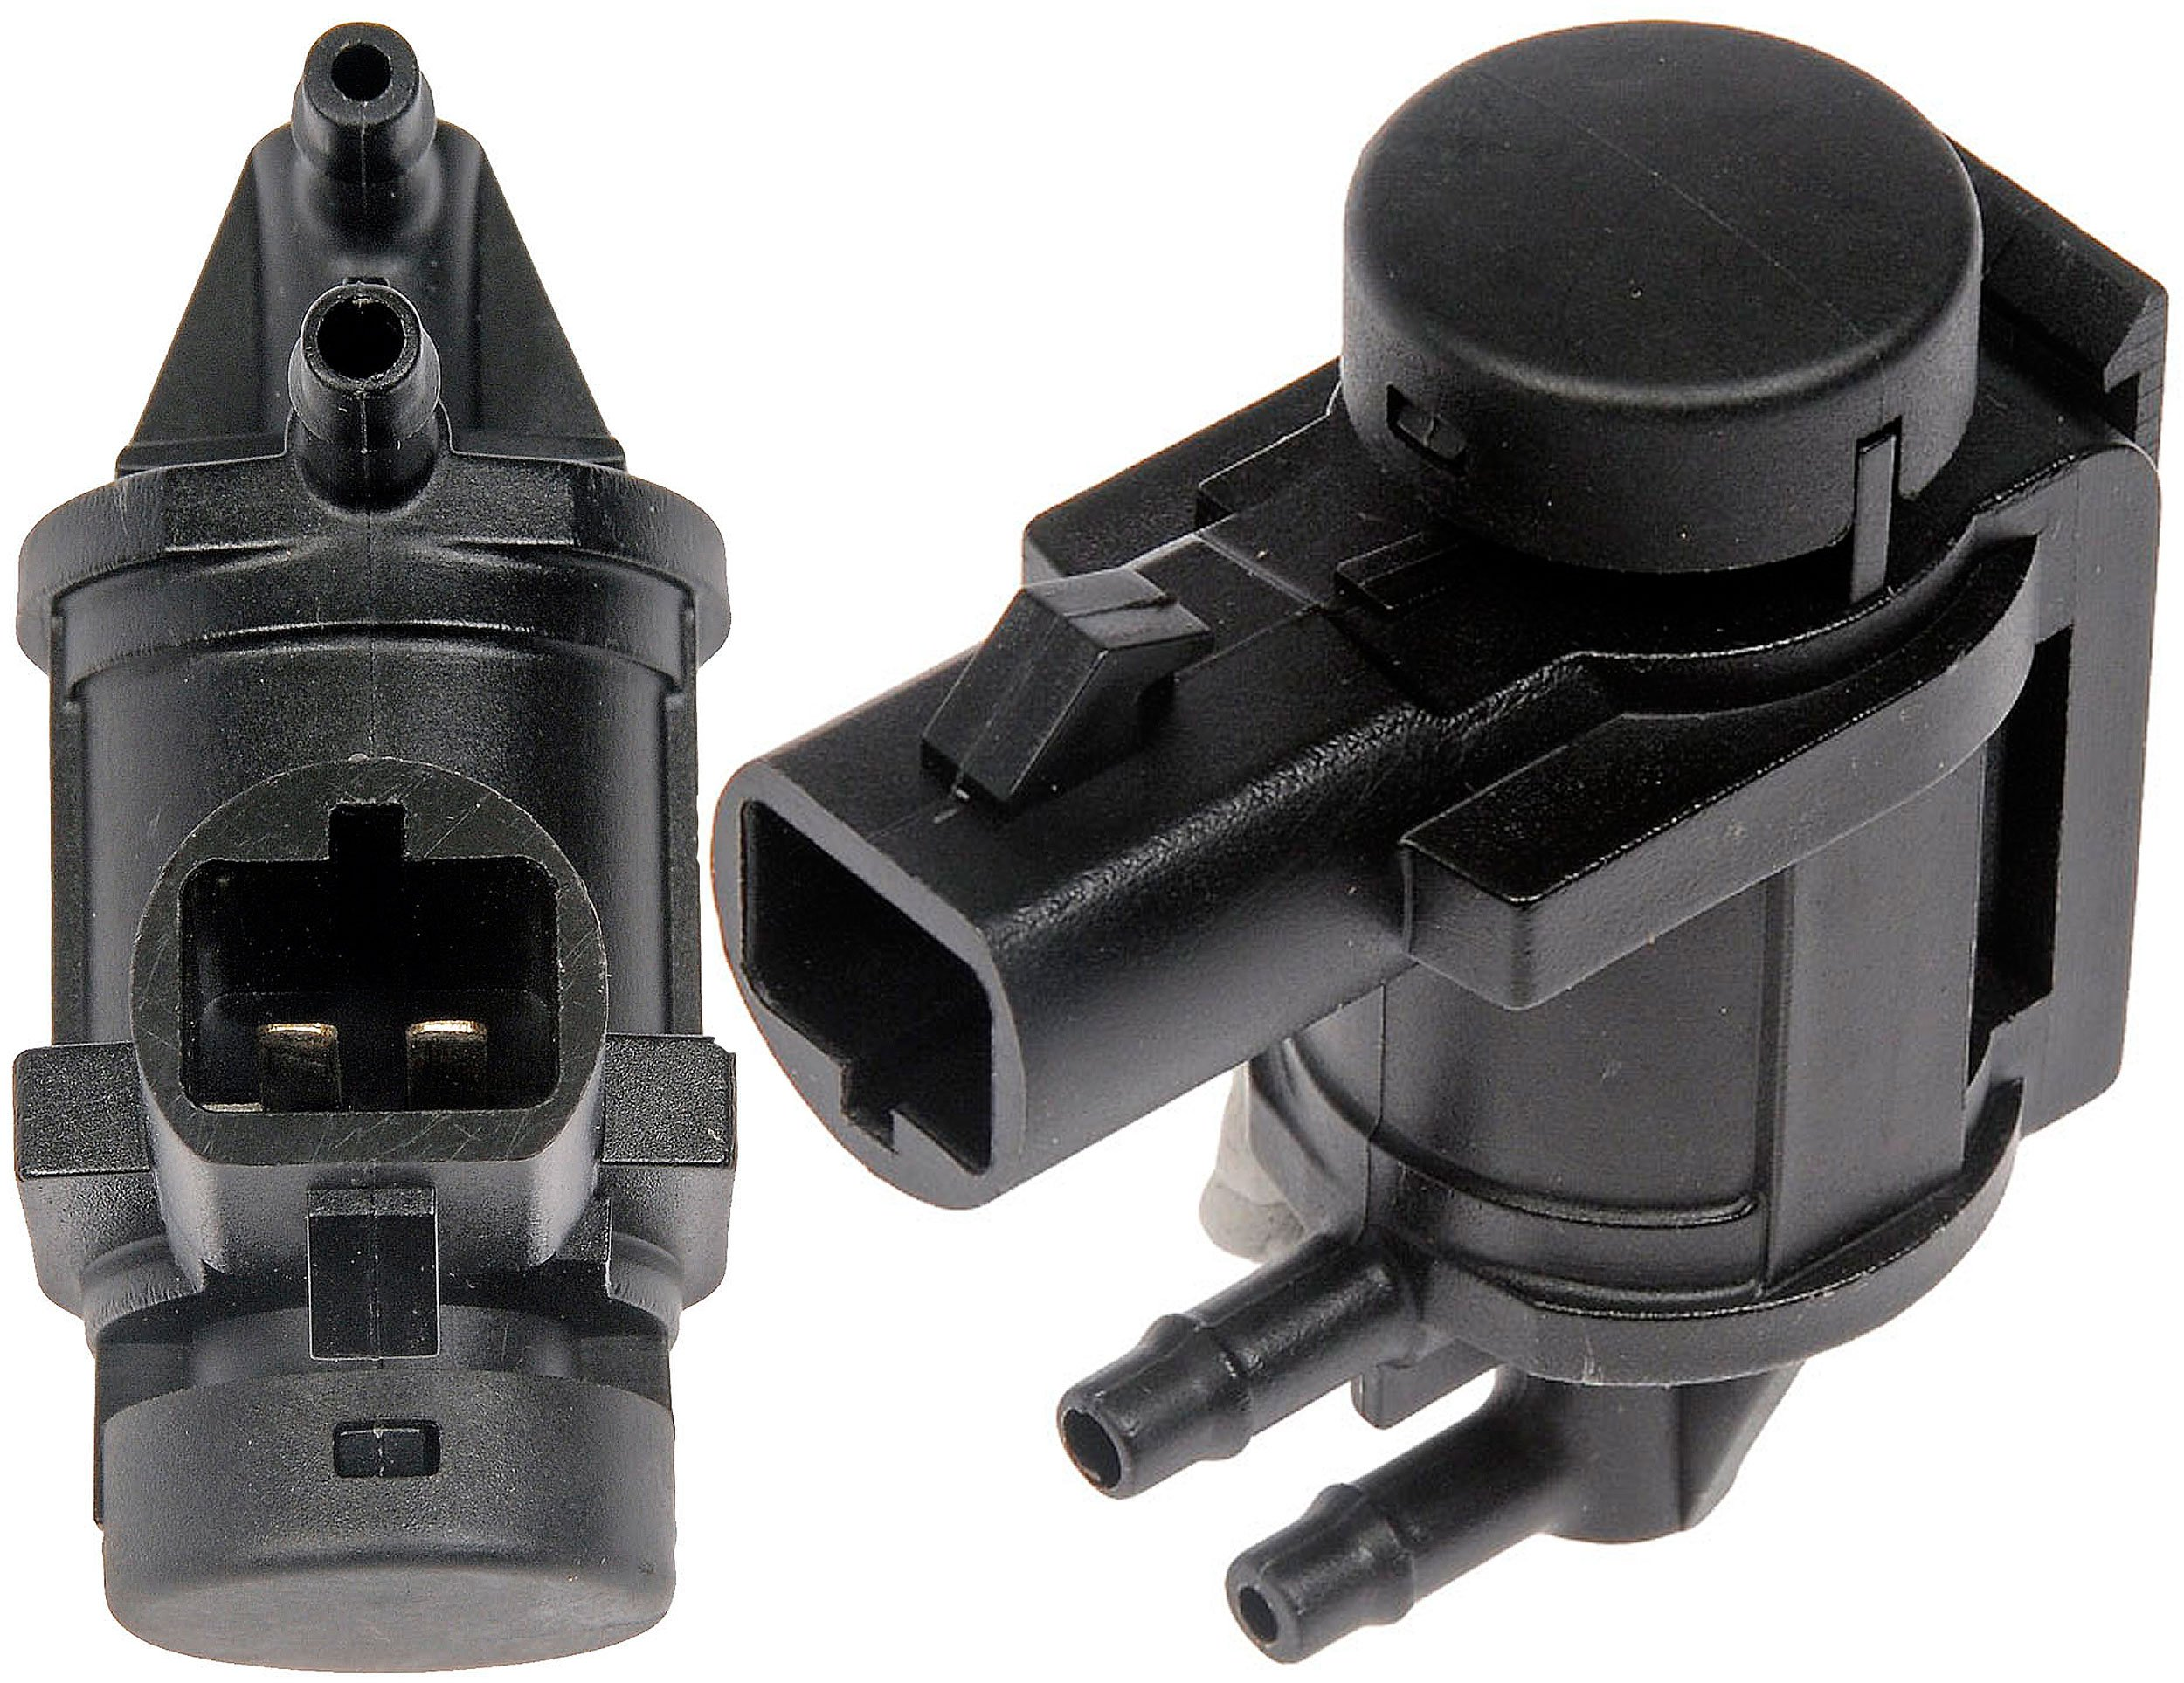 APDTY 022267 Vacuum Solenoid EGR Exhaust Gas Recirculation & Evaporation Pressure Regulator (Replaces Only Models w/ Wiring Harness Plug Node At 6'Oclock Position; Match Image) (Replaces 6L3Z-9H465-B)